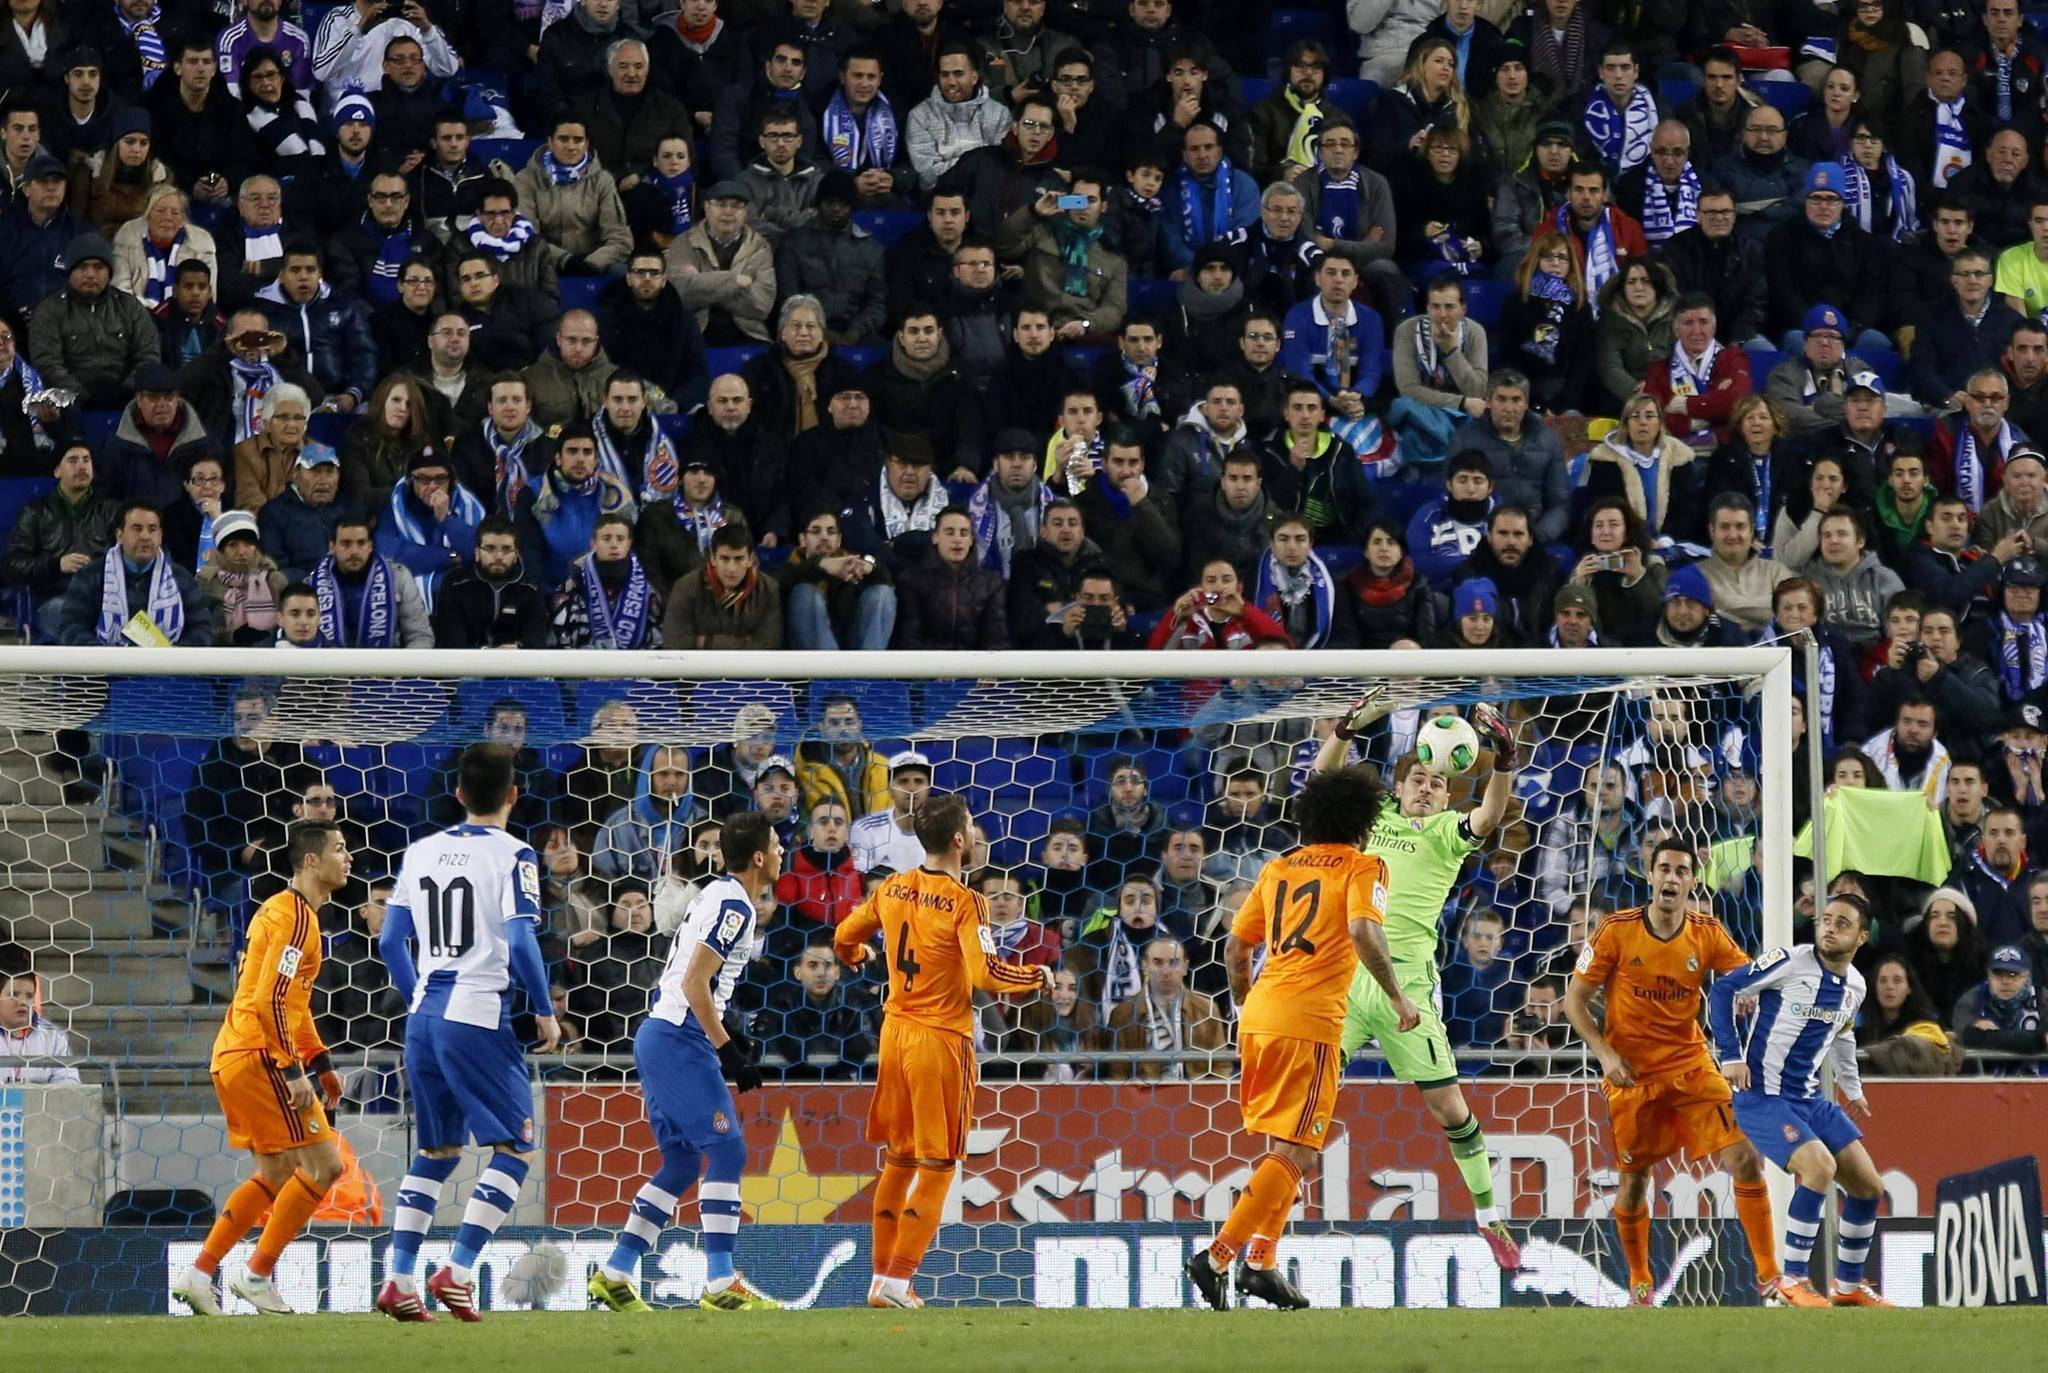 Real Madrid's Iker Casillas catches the ball against Espanyol players during their King's Cup soccer match at Cornella El Prat stadium, in Barcelona January 21, 2014.